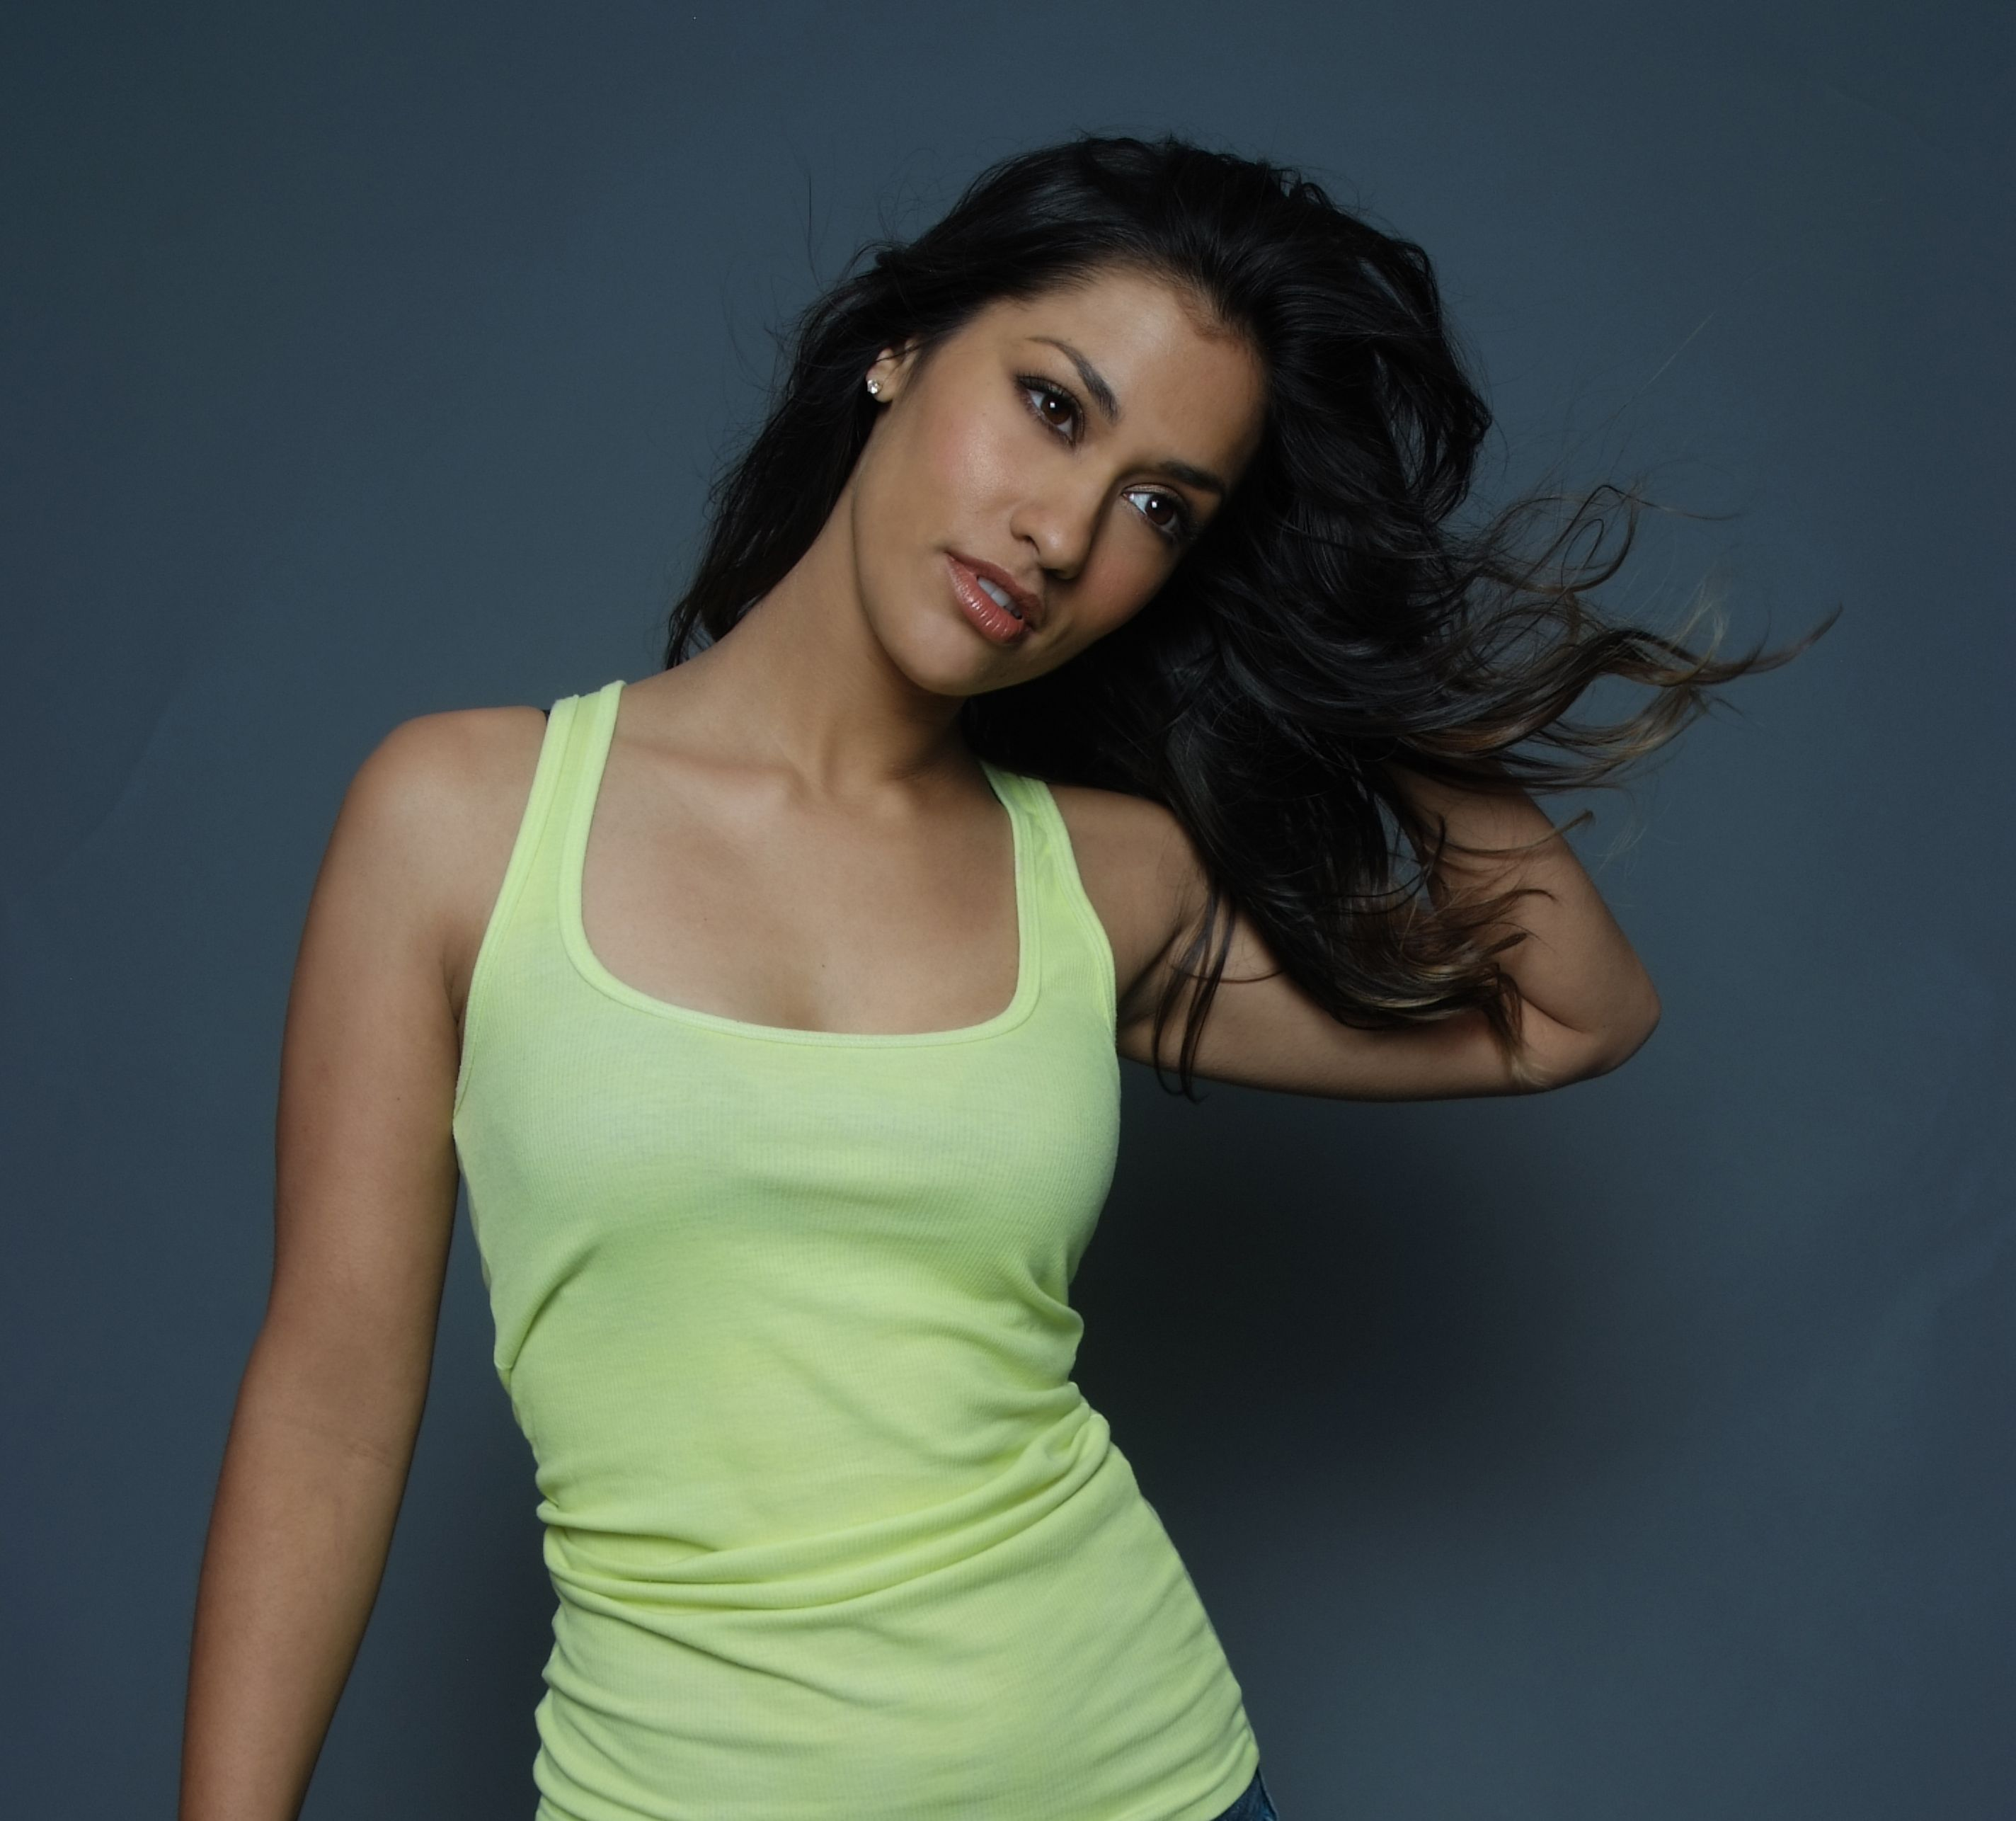 janina gavankar - photo #15